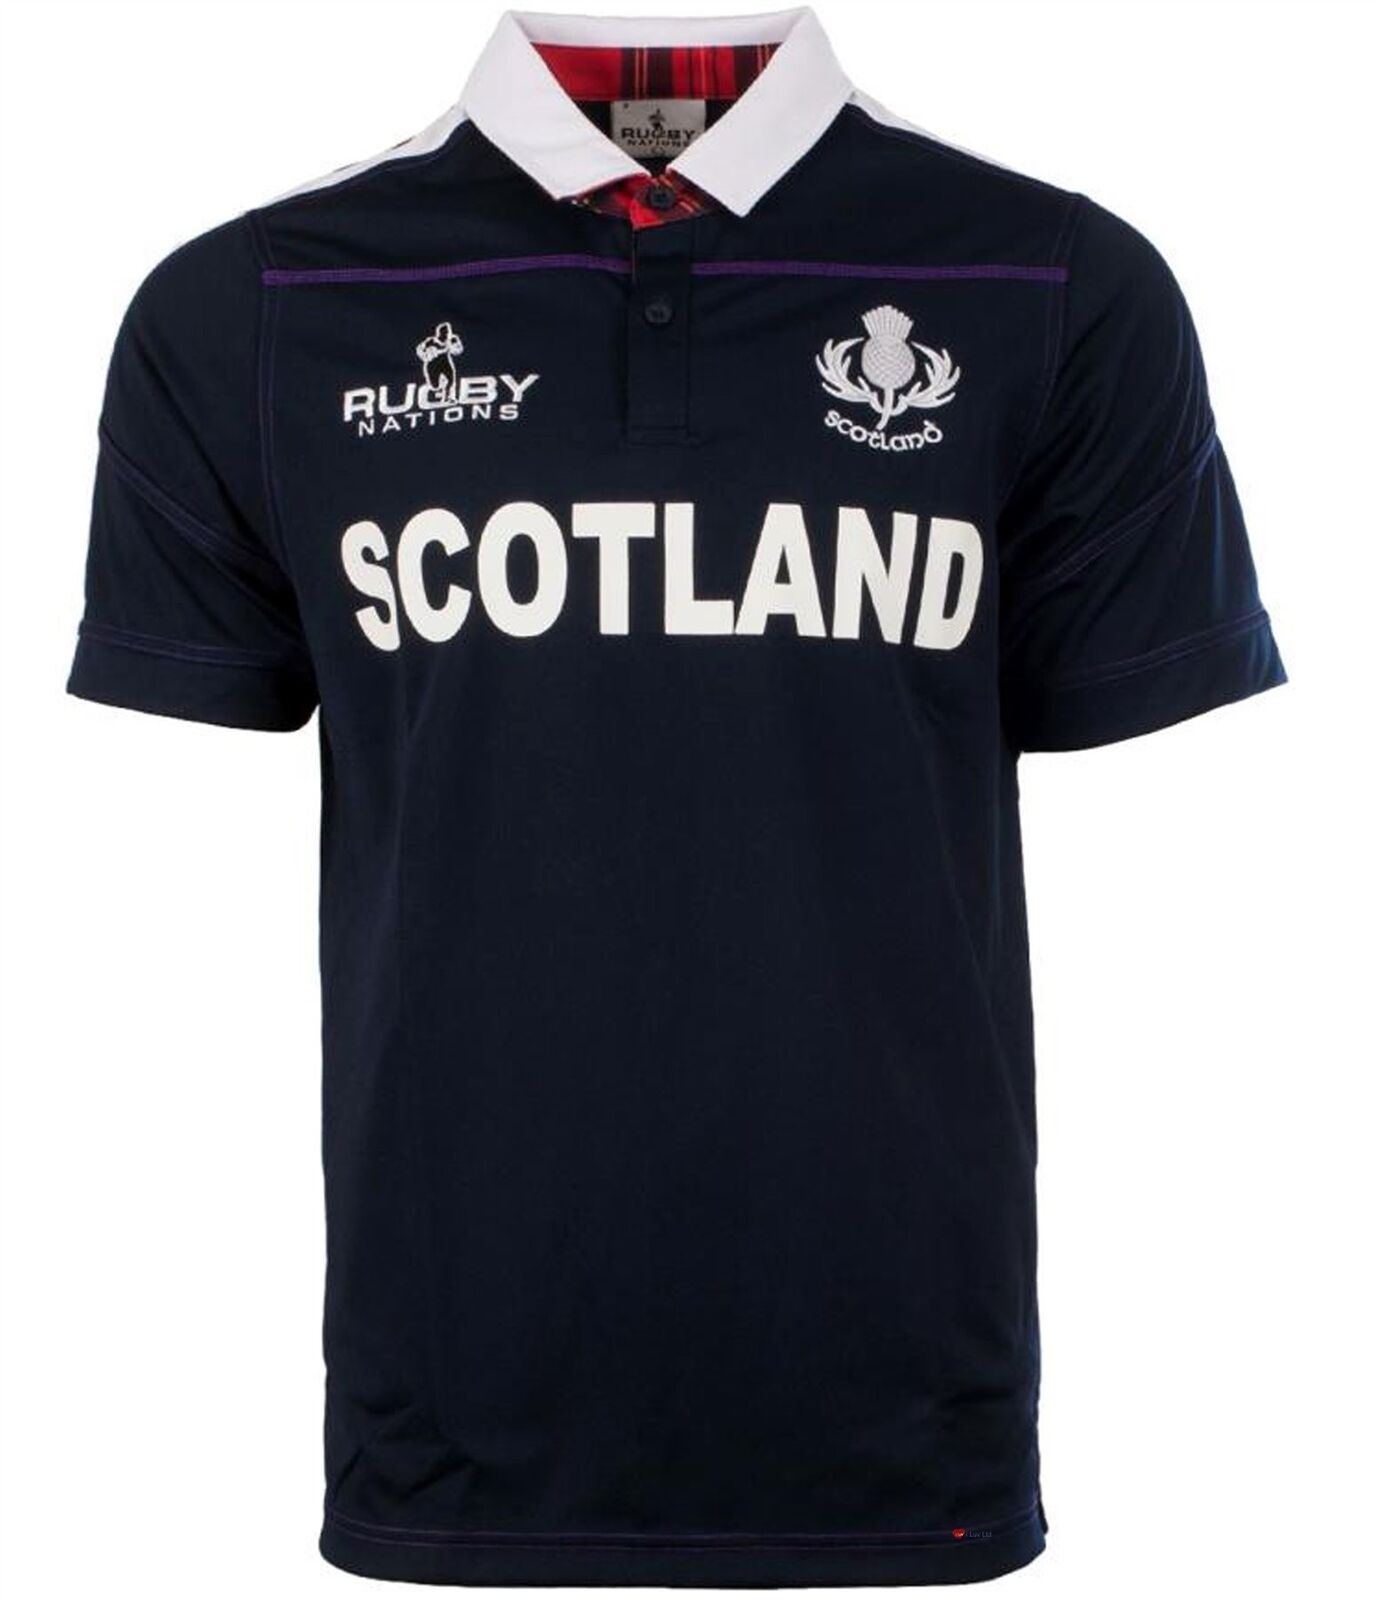 Gents Rugby Nations Rugby Shirt With Scotland Text In Navy Größe Large